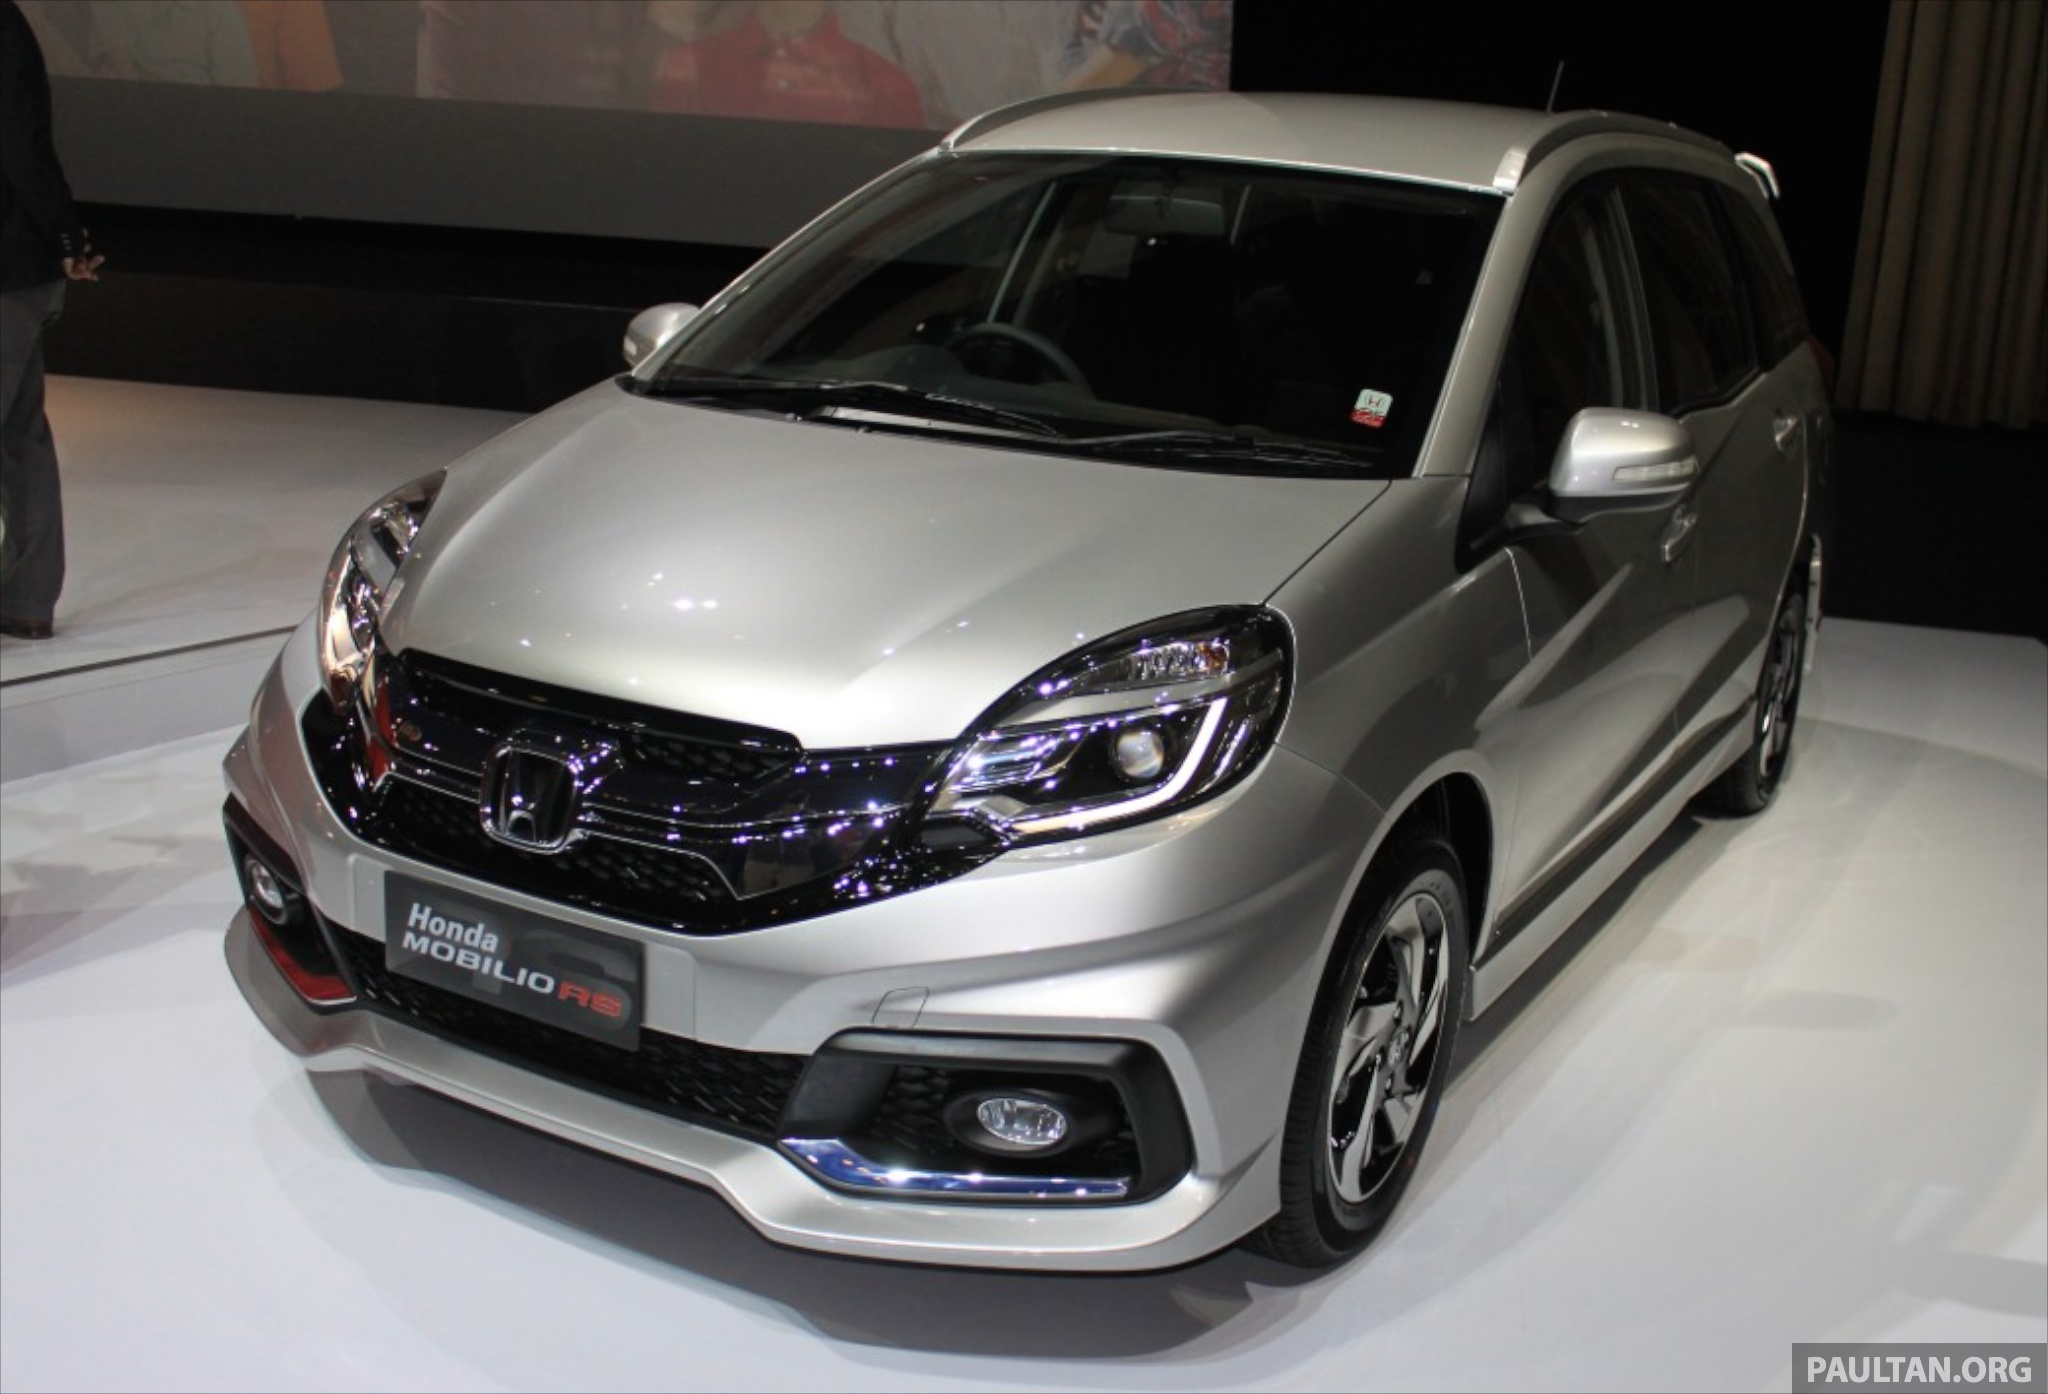 Honda Mobilio Rs Range Topper Launched In Indonesia Paul Tan Image